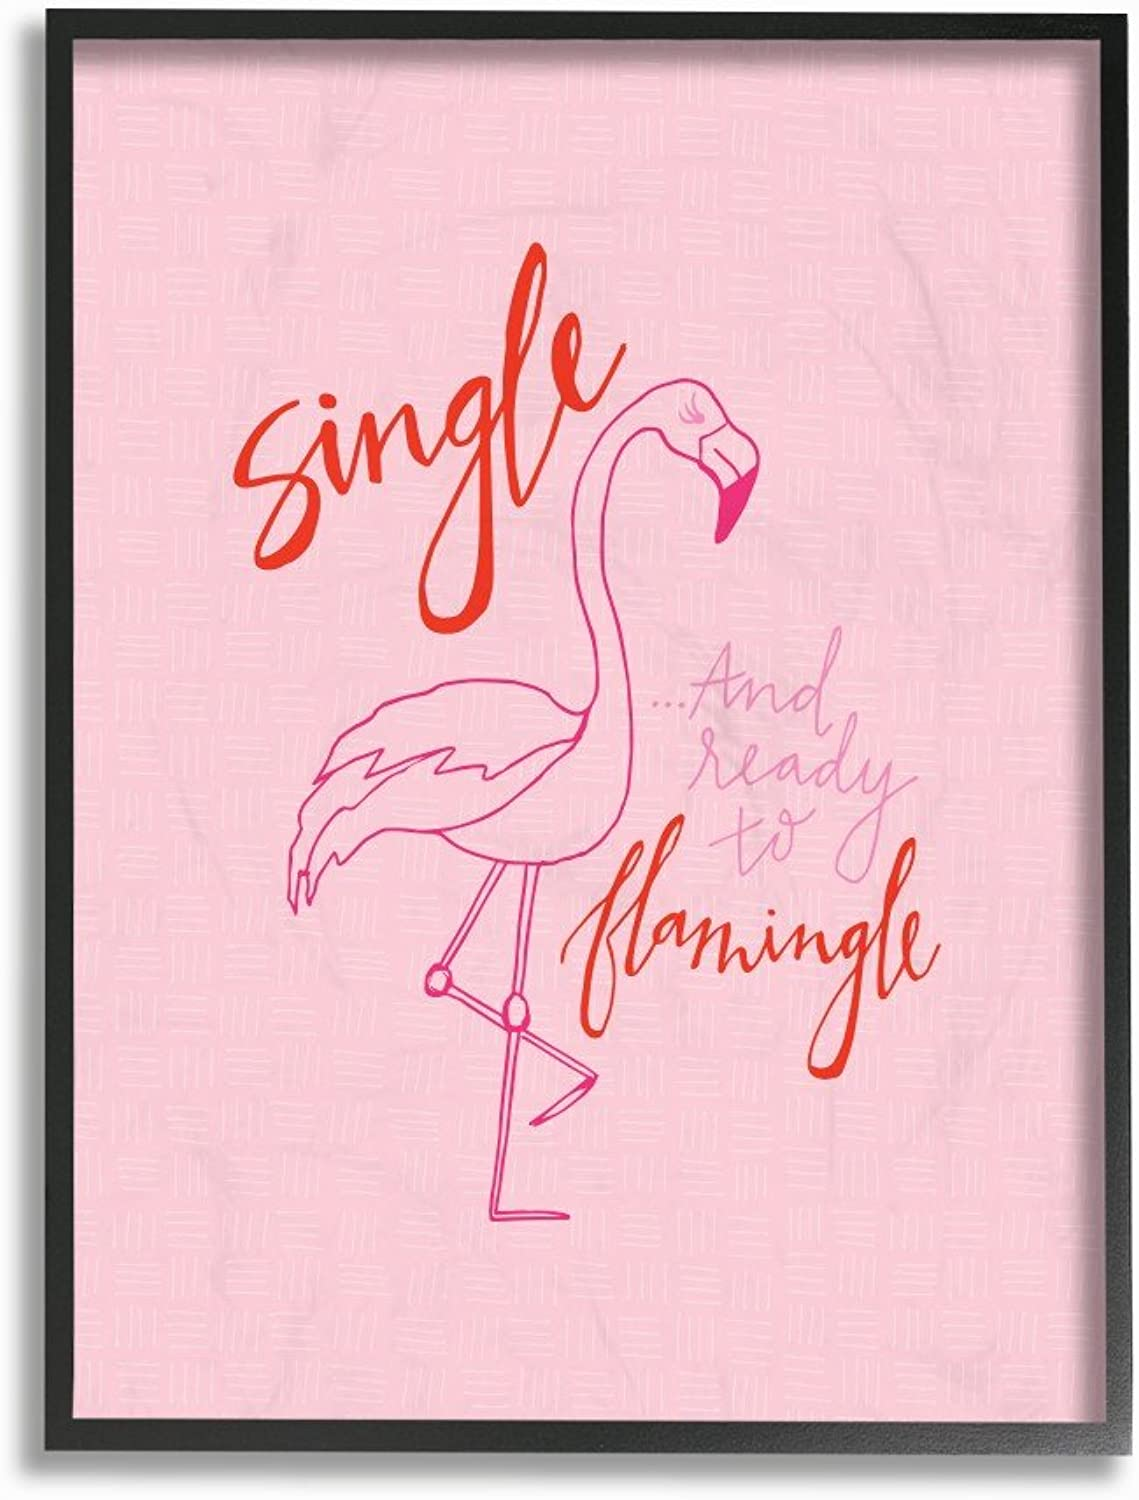 The Stupell Home Decor Collection Hot Pink Single and Ready to Flamingle Flamingo Framed Giclee Texturized Art, 11 x 14, Multicolor